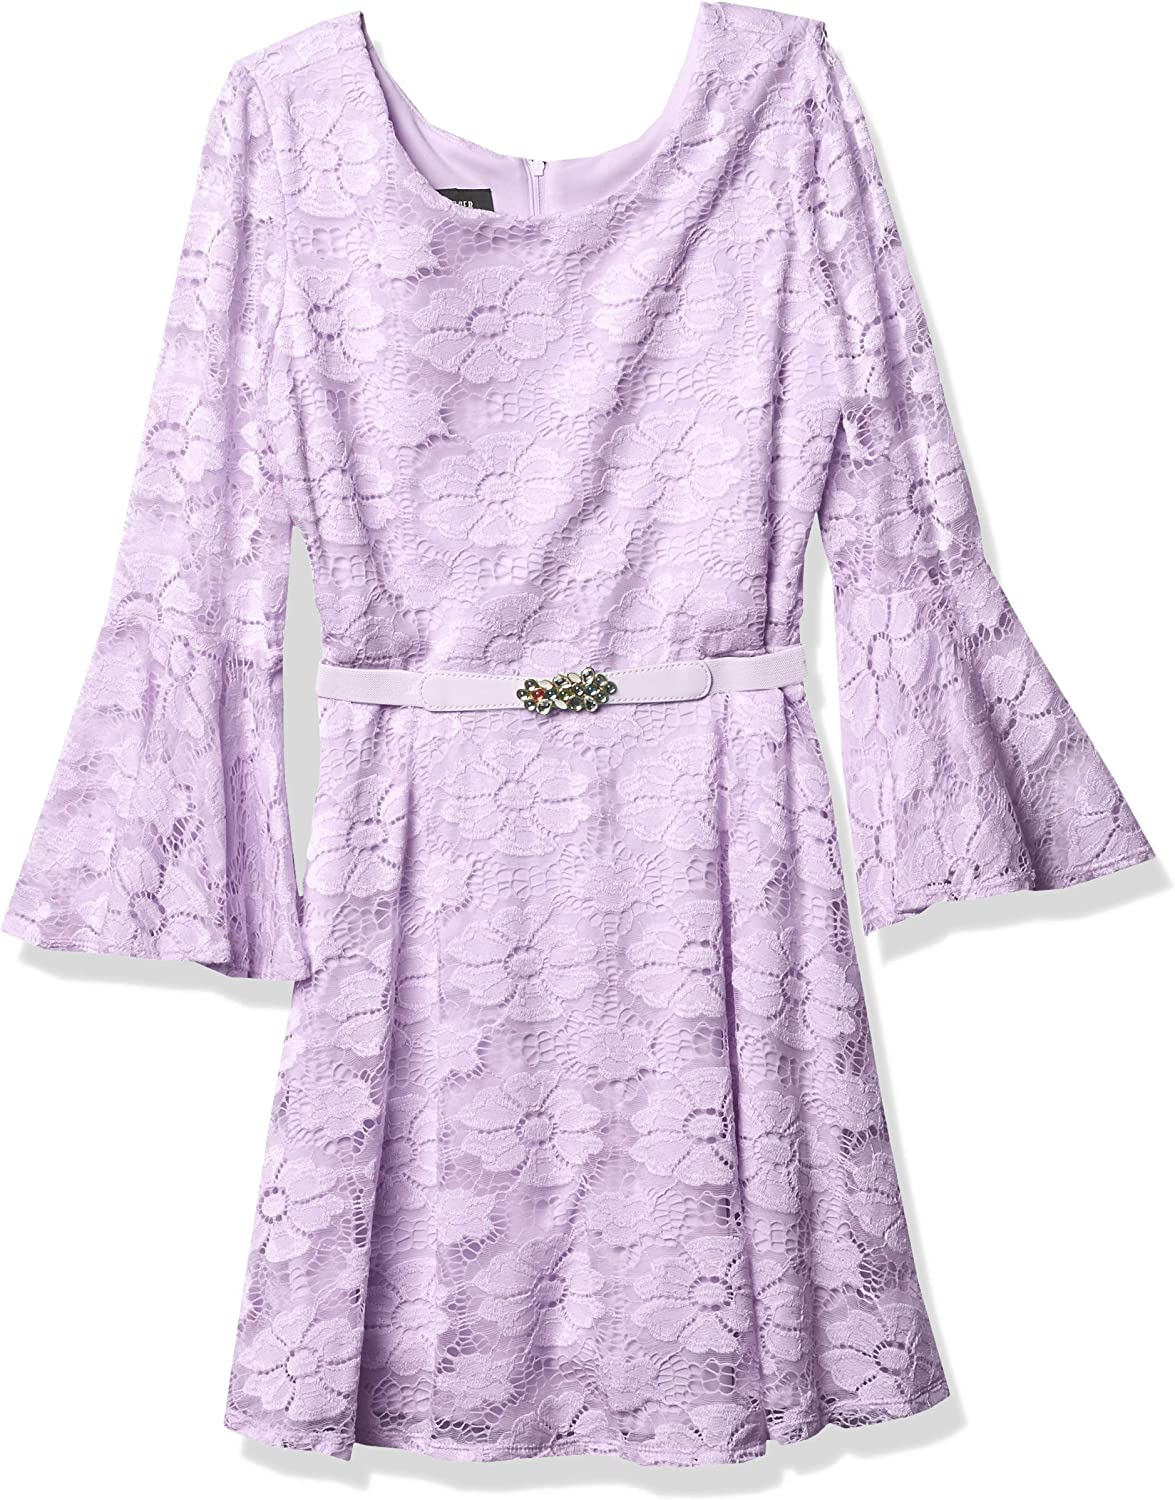 Free shipping Amy Byer Girls' Belted Allover Dedication Bellsleeve Lace Dress